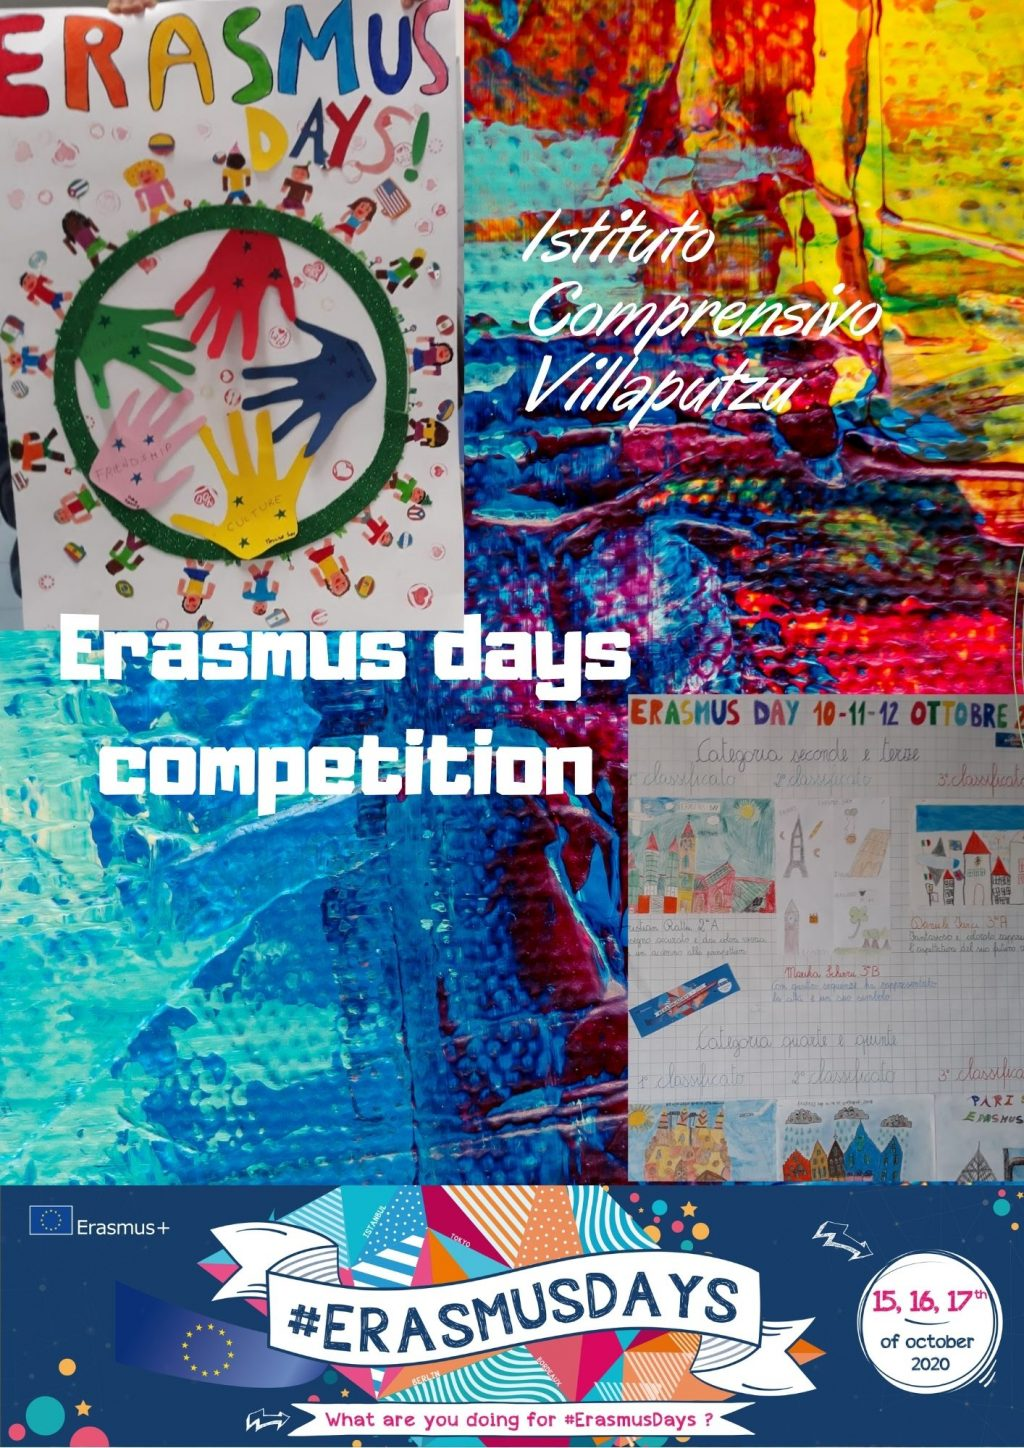 Erasmus-days-competition.jpg